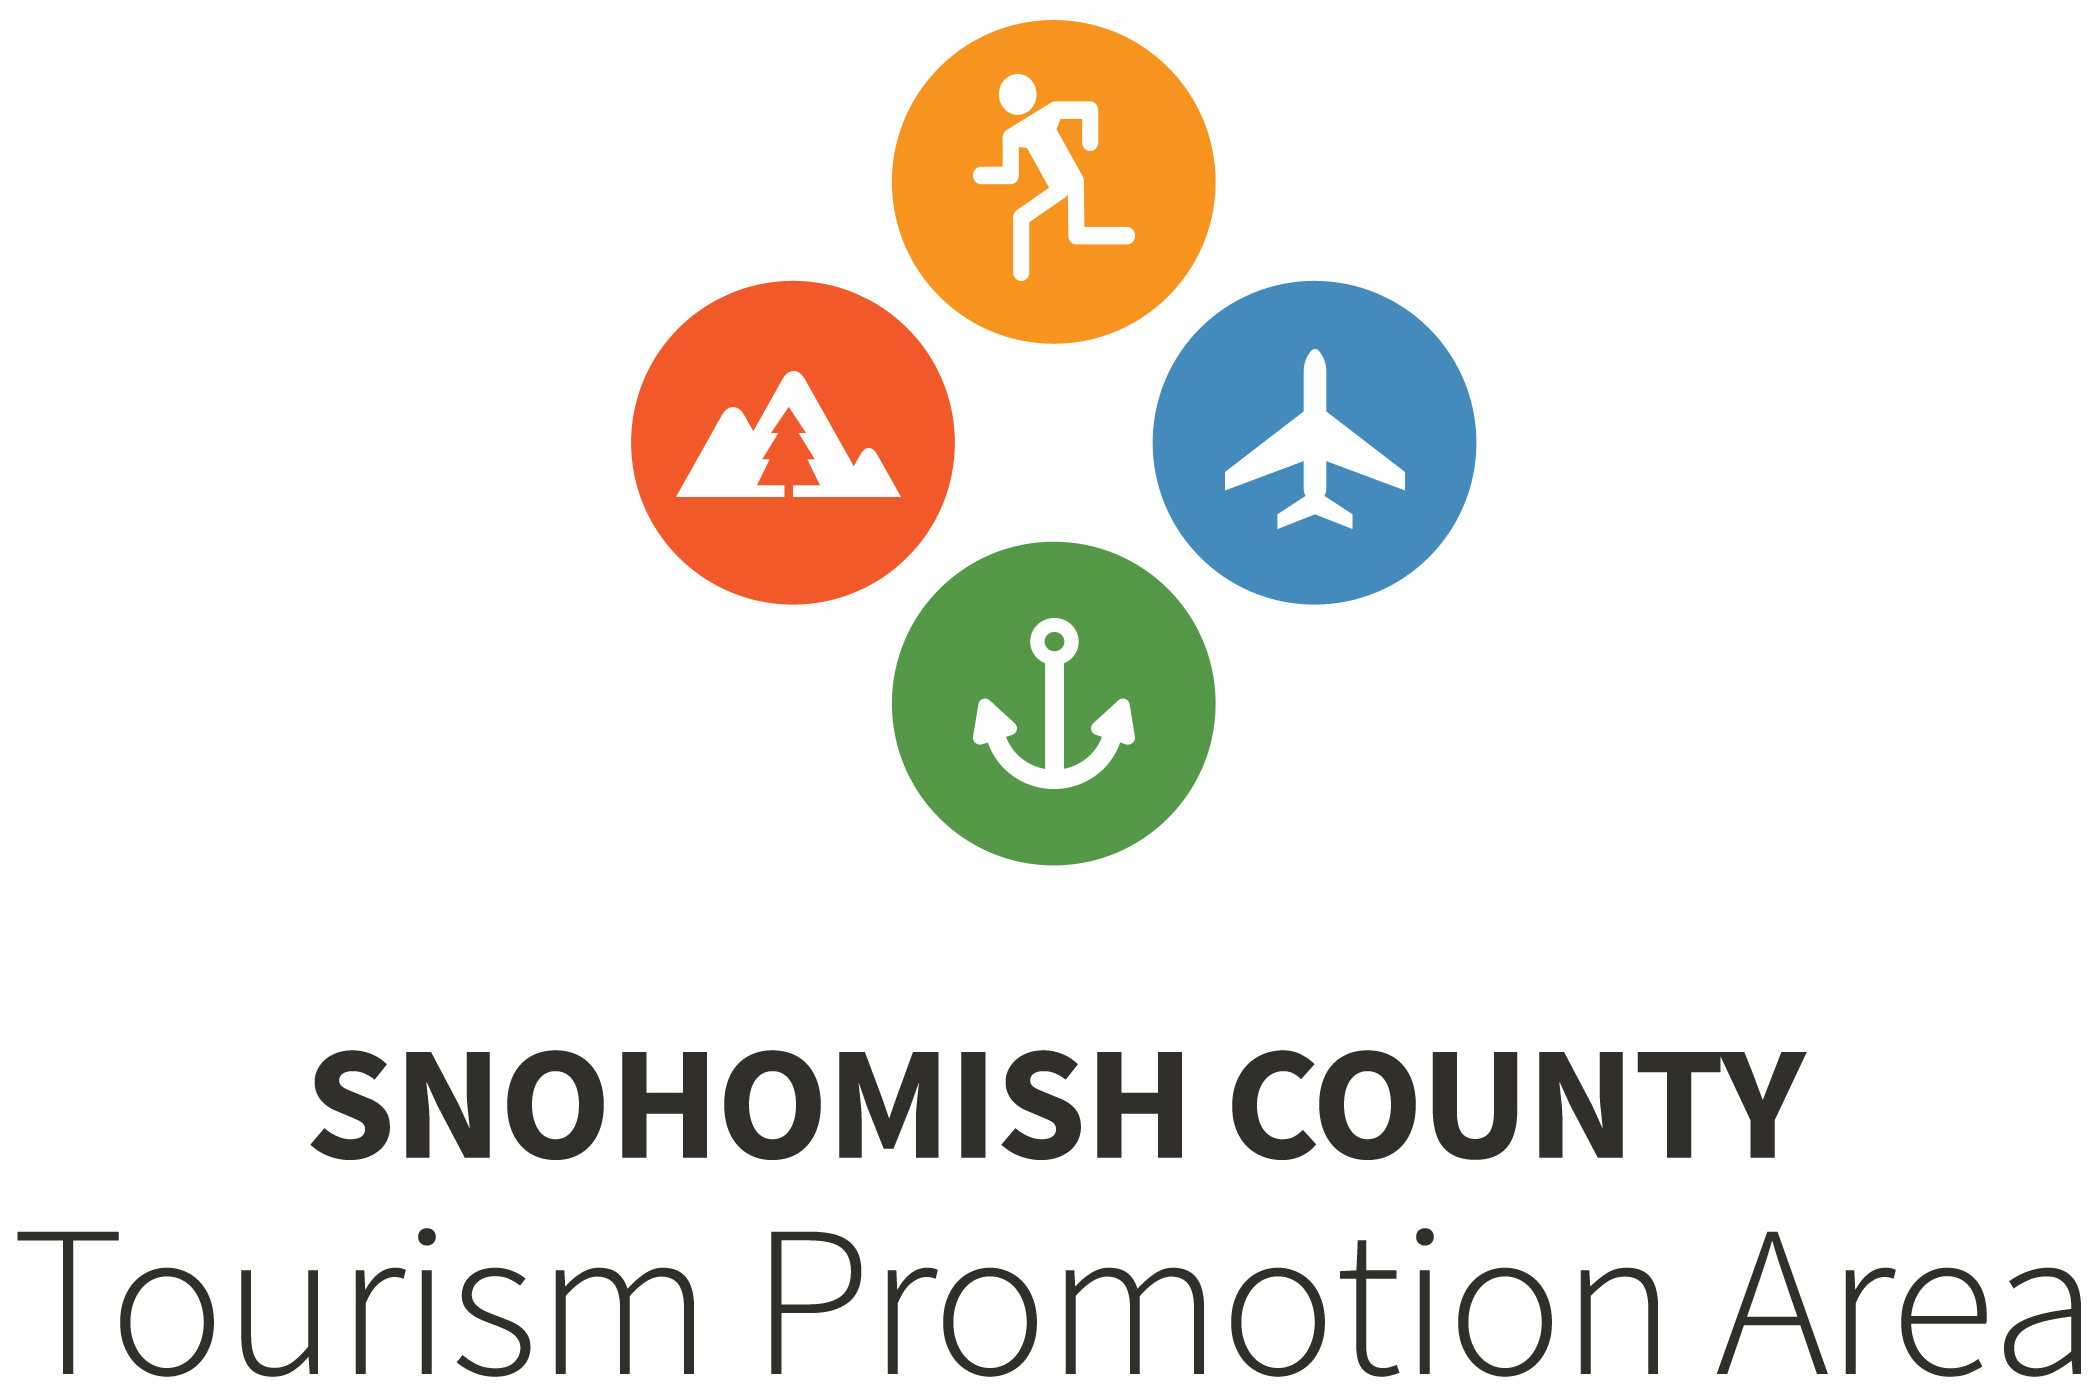 Snohomish County Tourism Promotion Area (TPA)